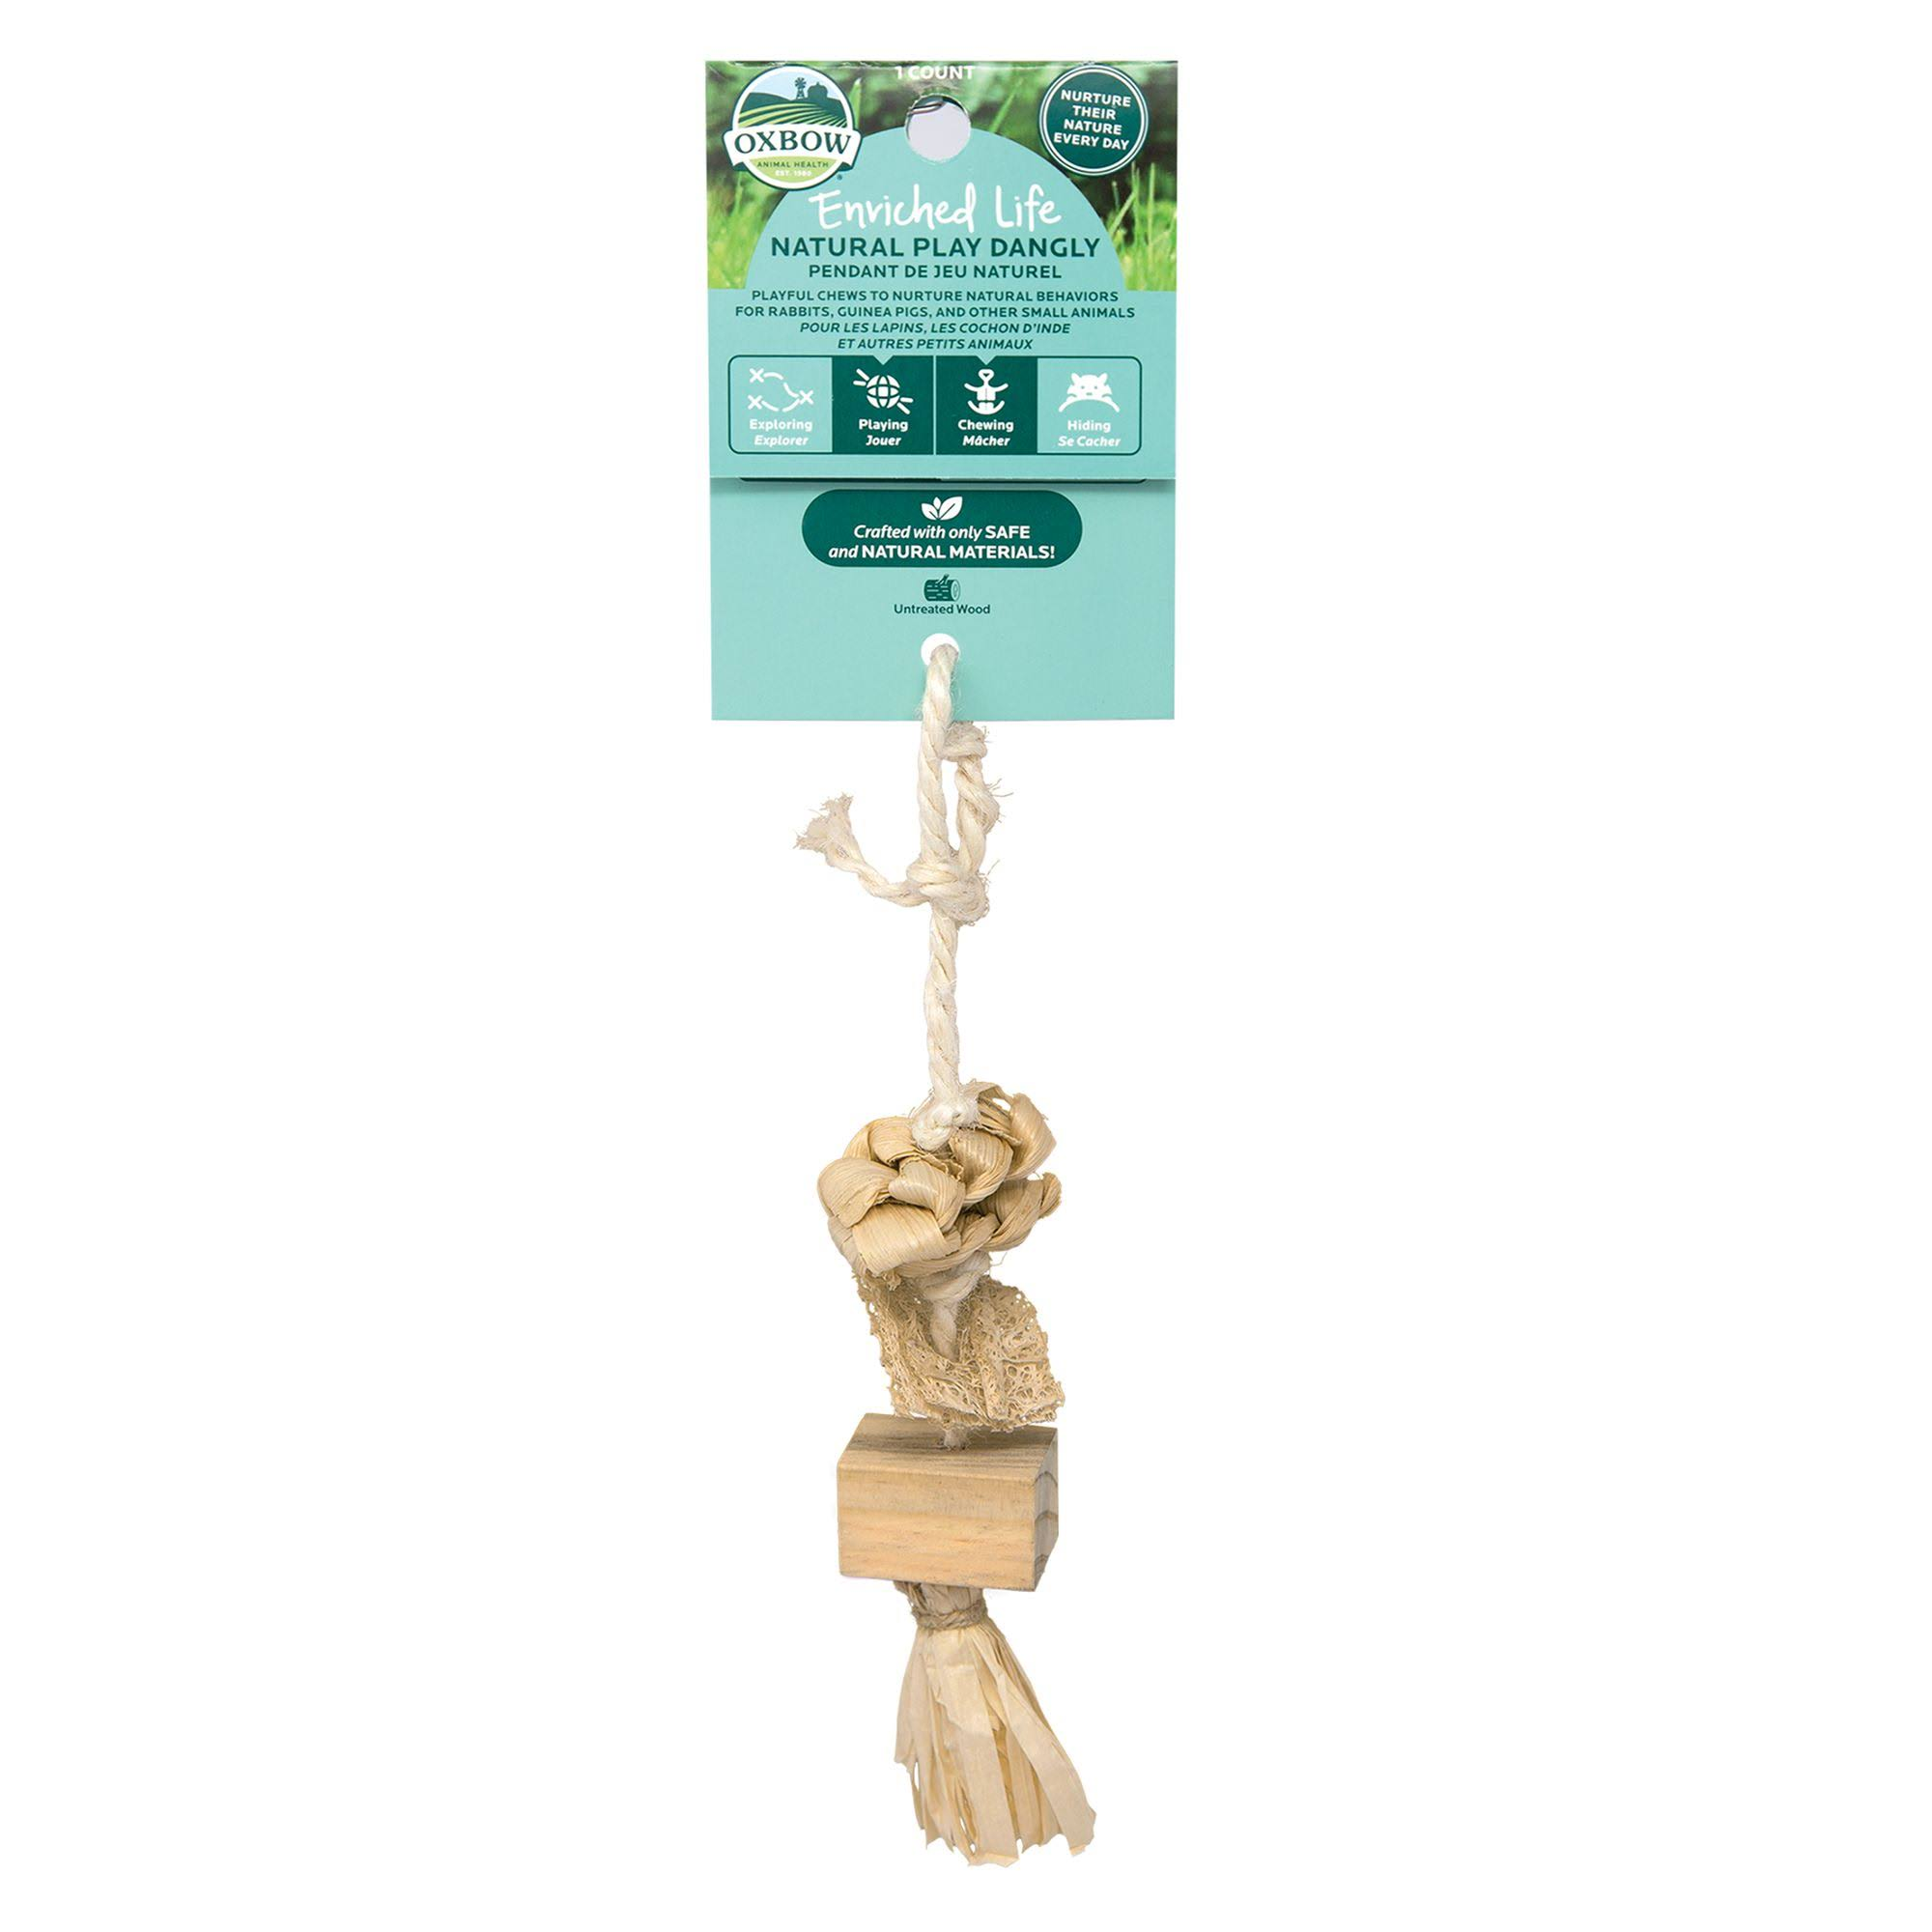 Oxbow 73296322 Small Animal Enriched Life Natural Play Dangly